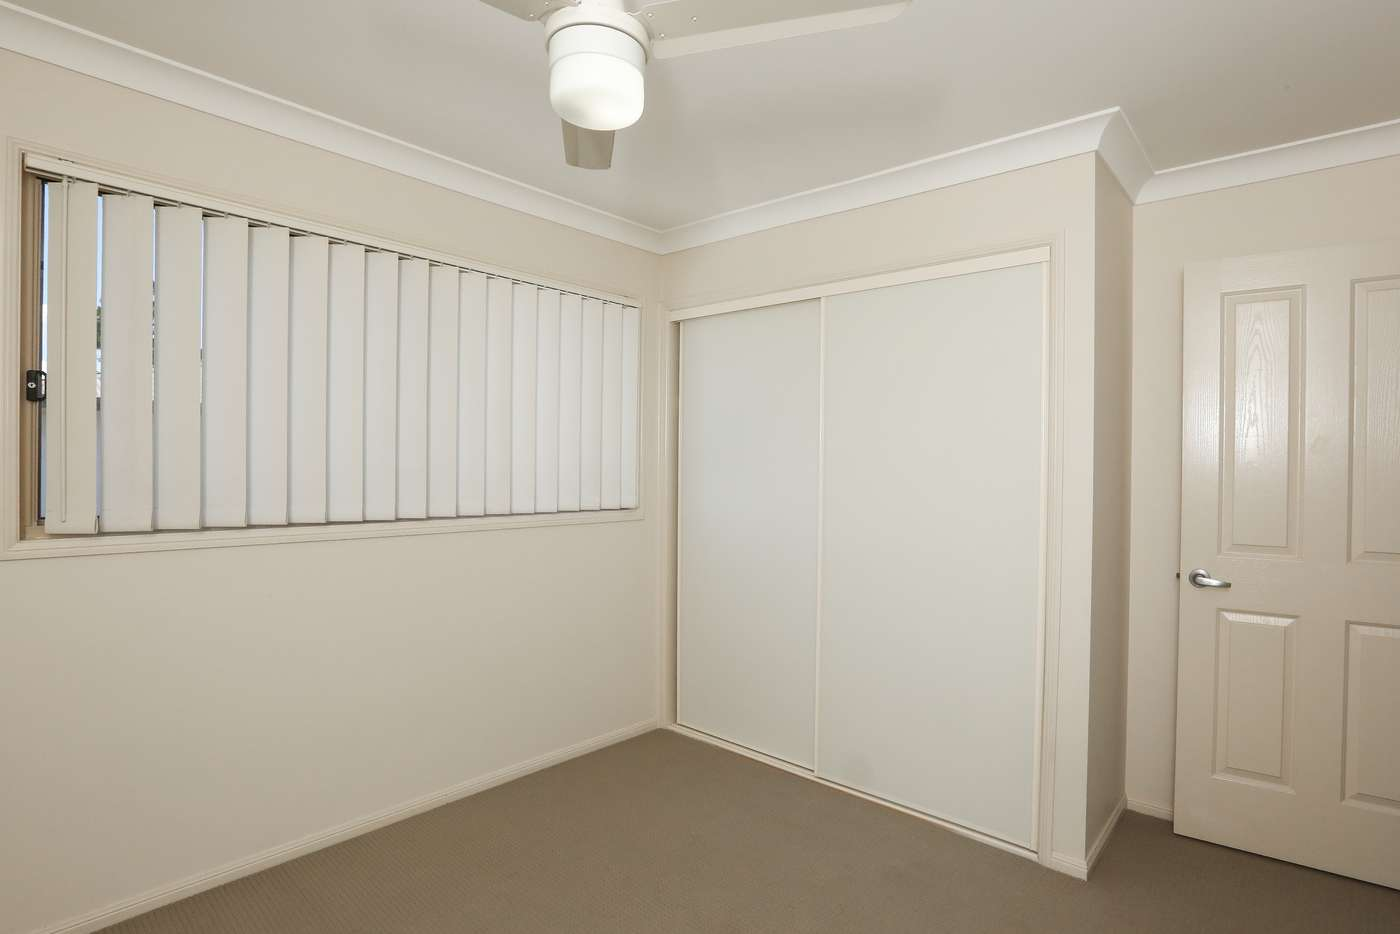 Seventh view of Homely townhouse listing, 439 Elizabeth Avenue, Kippa-ring QLD 4021